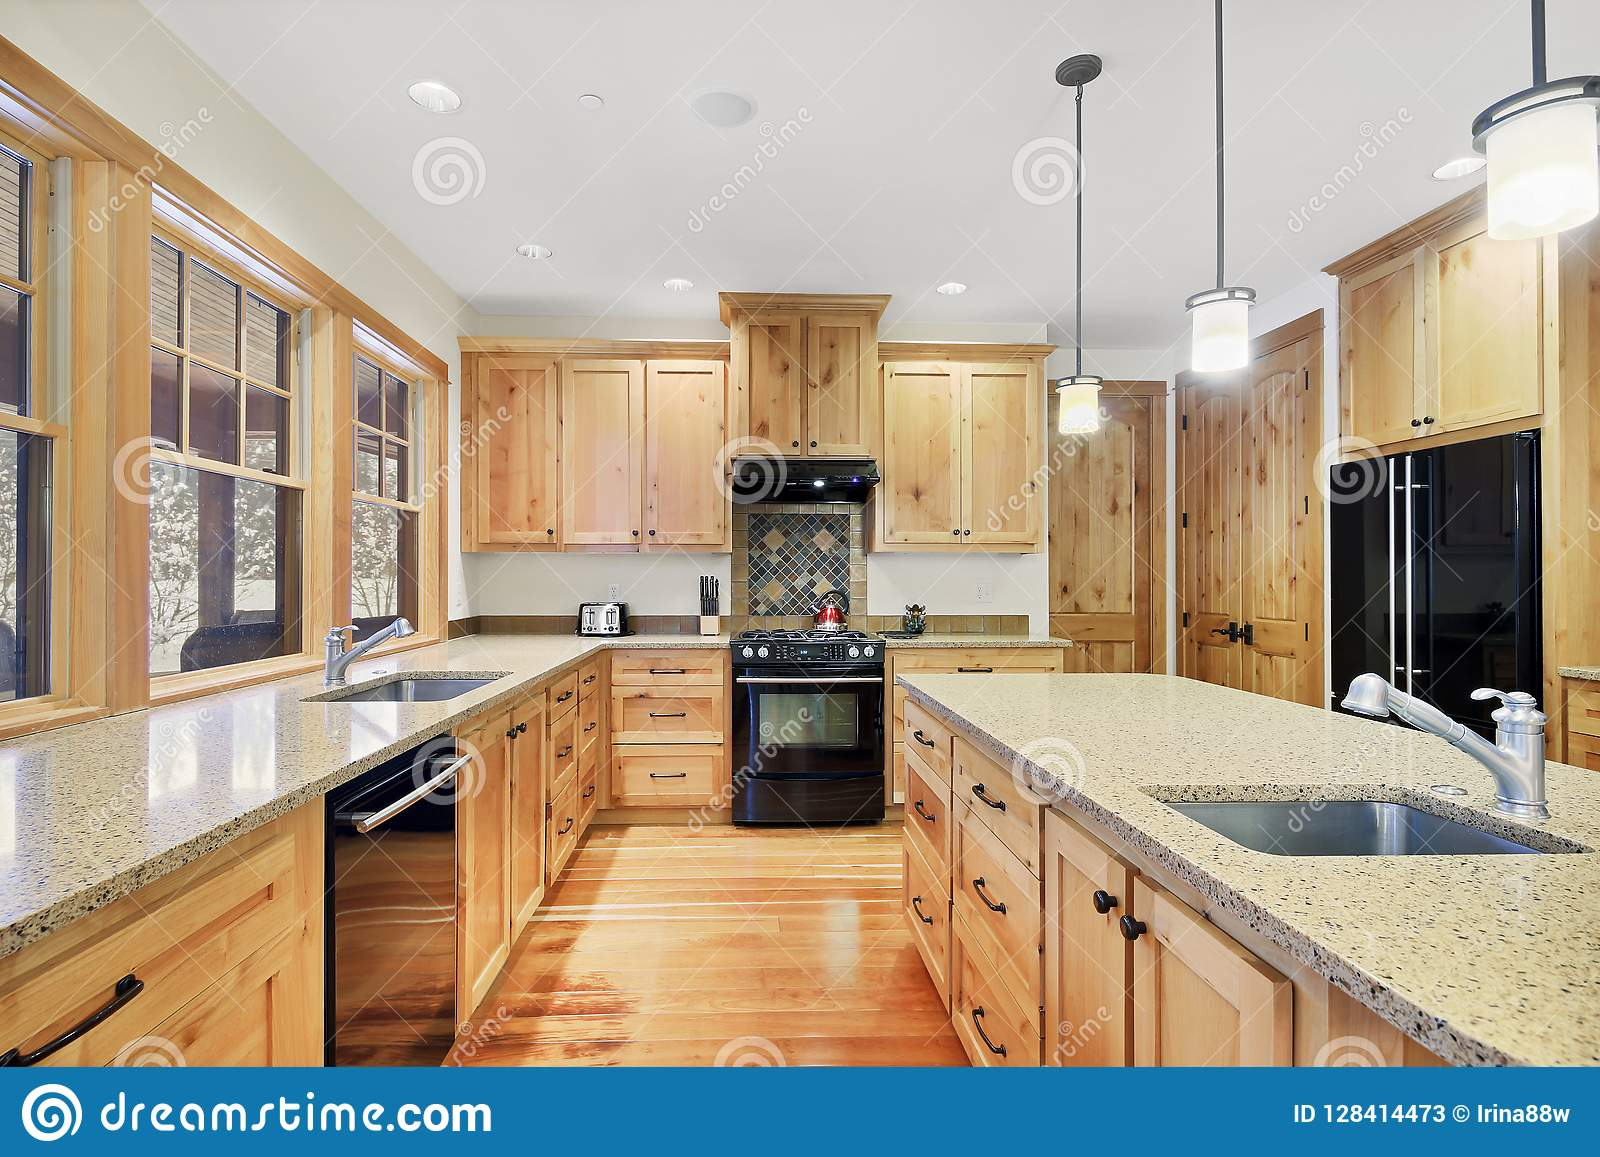 2 168 Beautiful Kitchen Cabinets Photos Free Royalty Free Stock Photos From Dreamstime